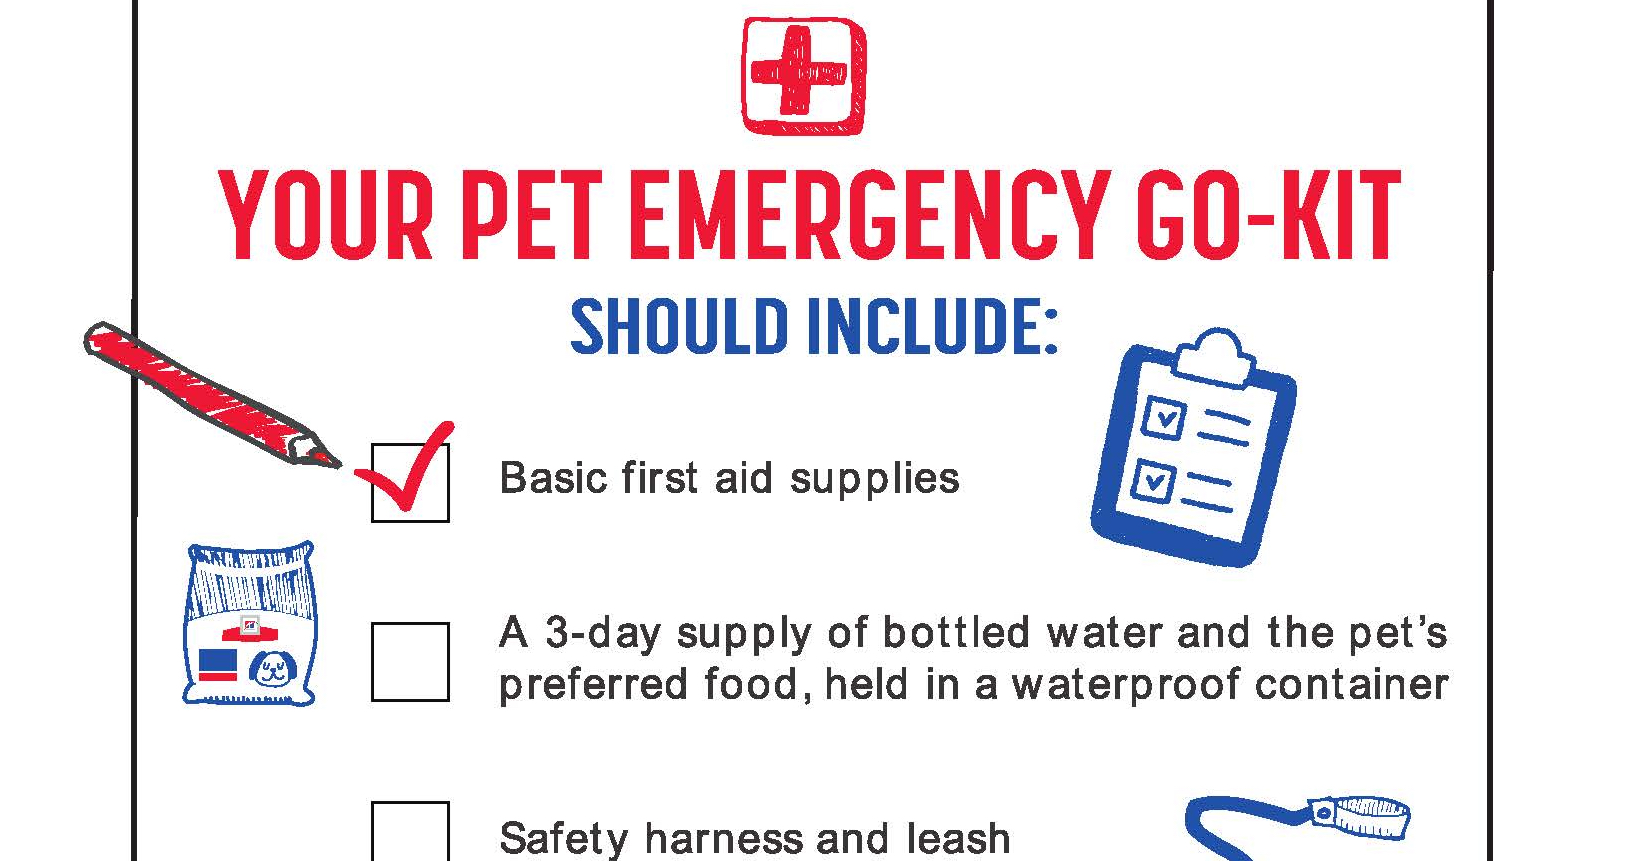 Are You Pet Prepared? - Hill's Pet Nutrition 2017-05-13 13:32